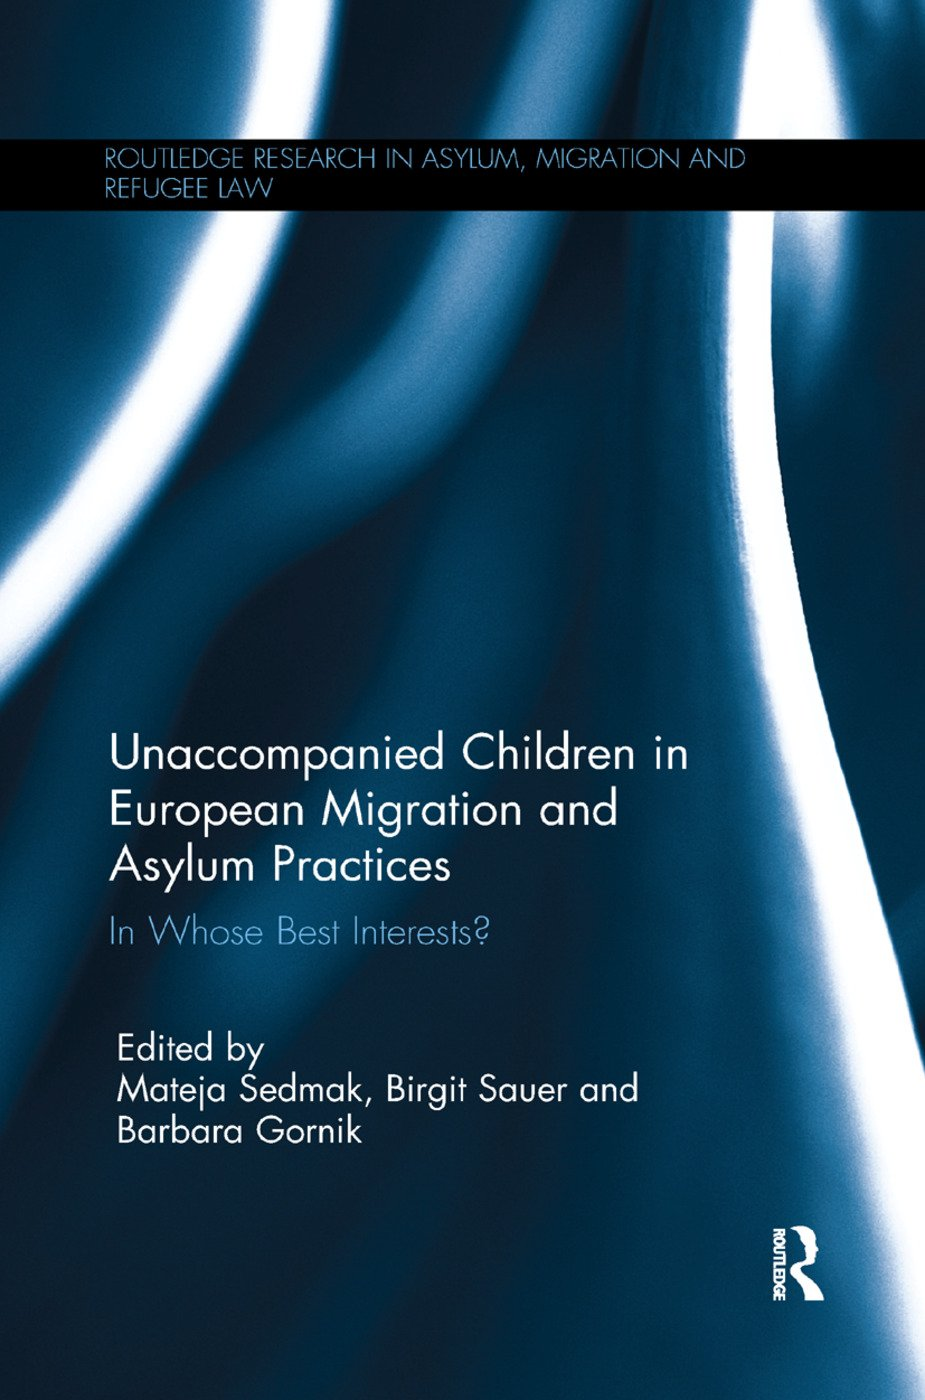 Unaccompanied Children in European Migration and Asylum Practices: In Whose Best Interests? book cover